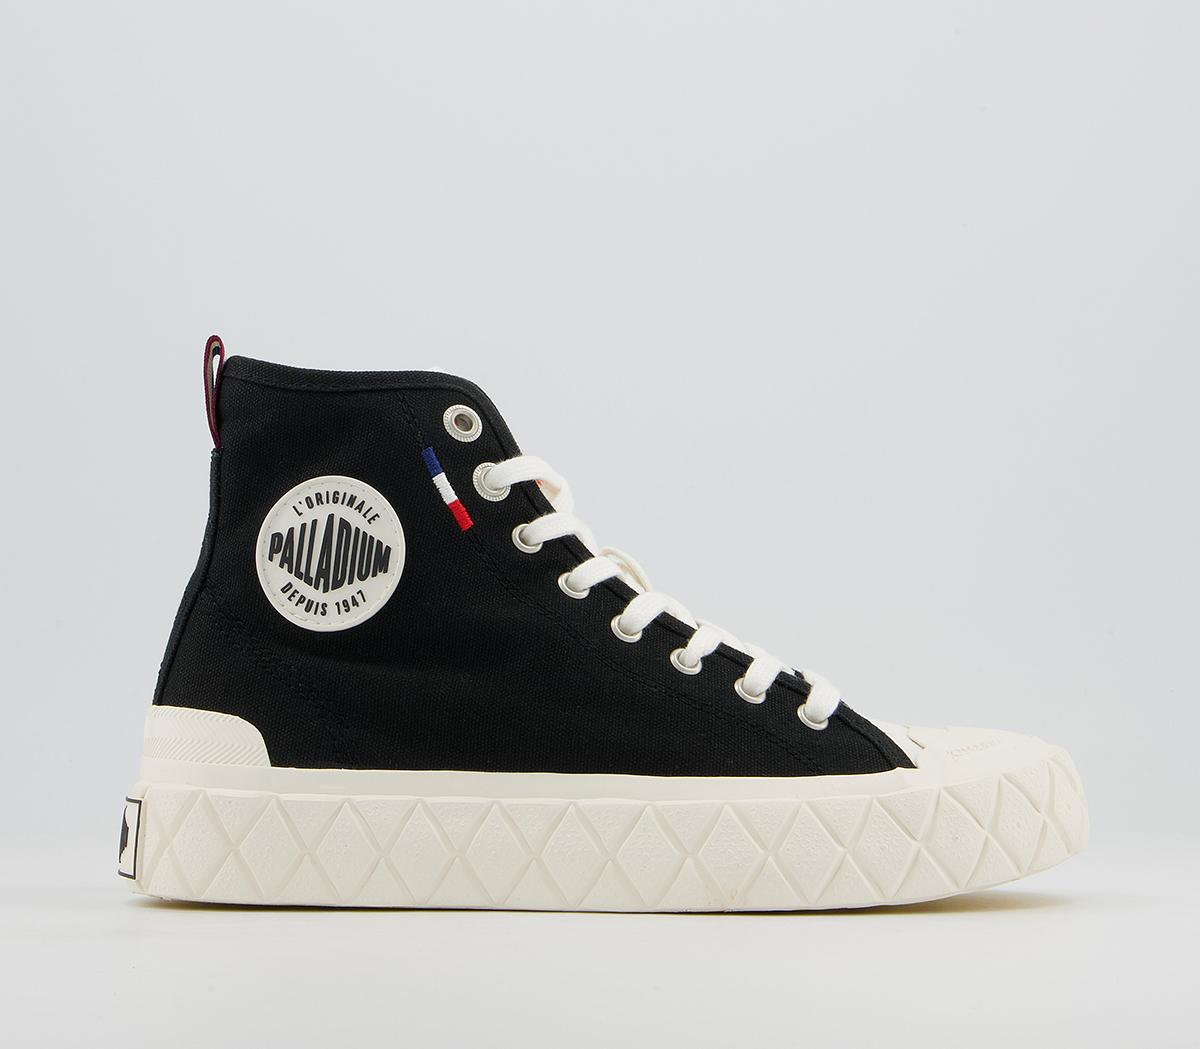 Pallace Cvs Mid Trainers